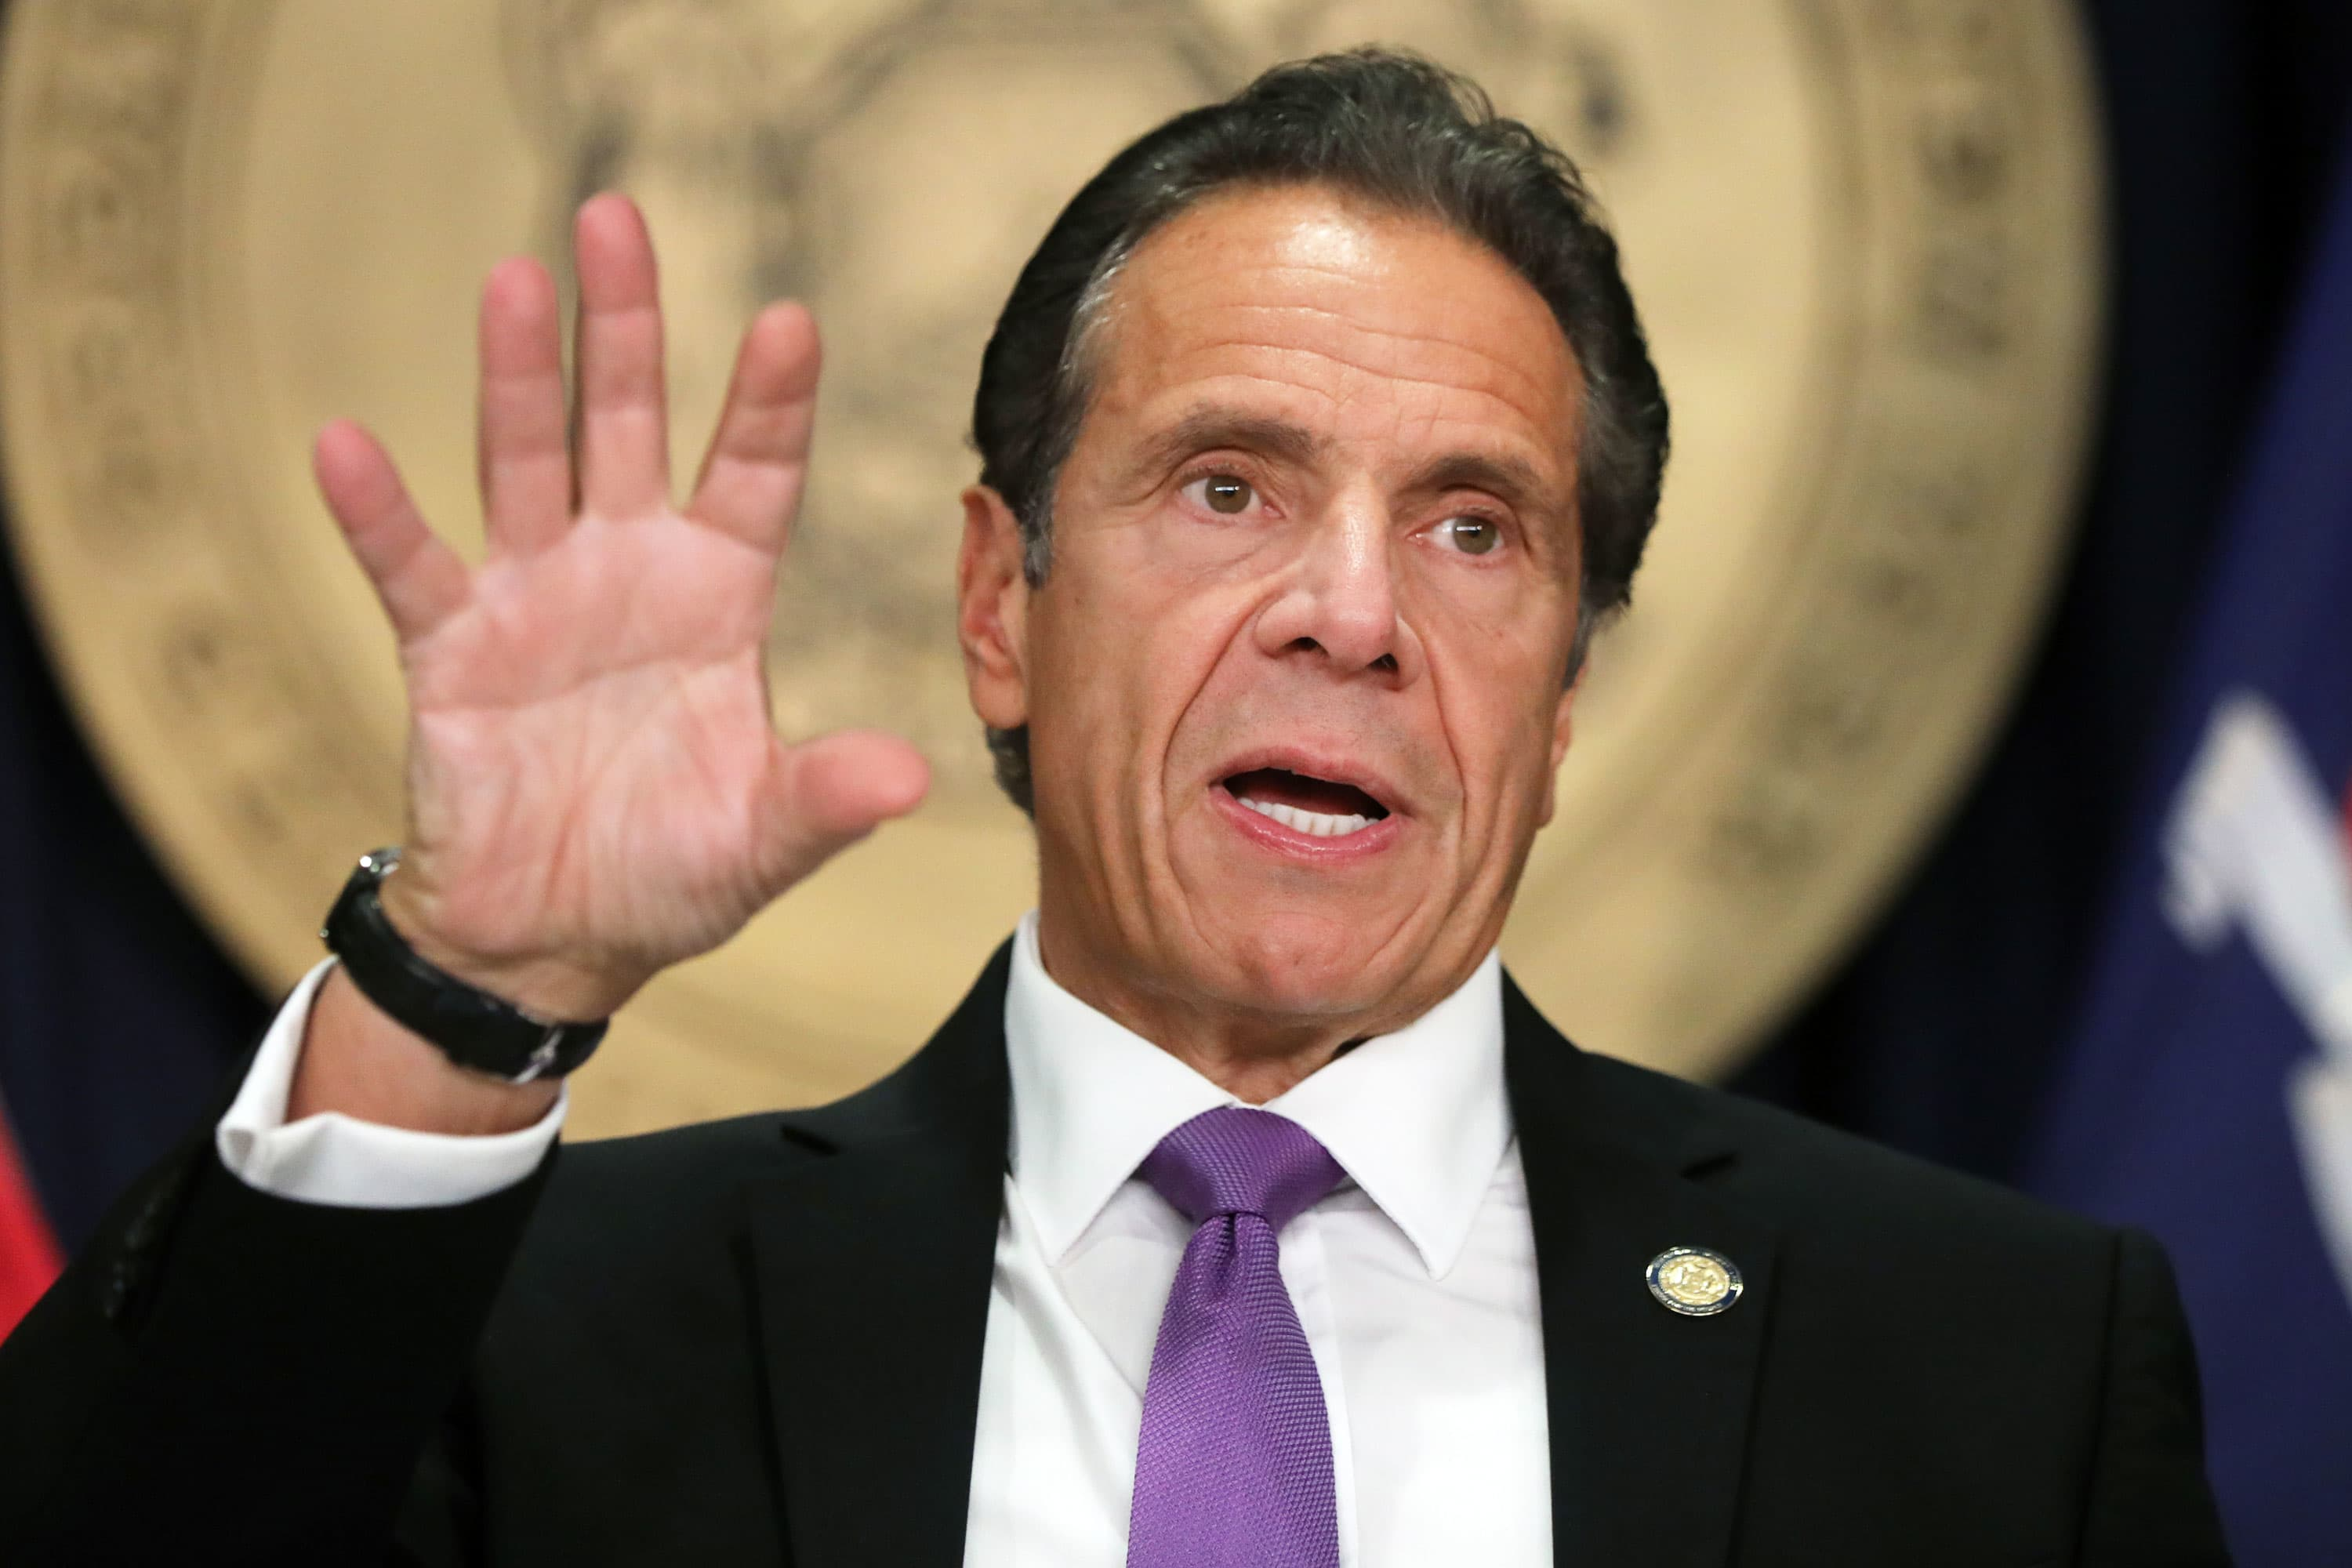 New York Gov. Cuomo warns a January economic shutdown is possible as Covid cases soar to springtime records